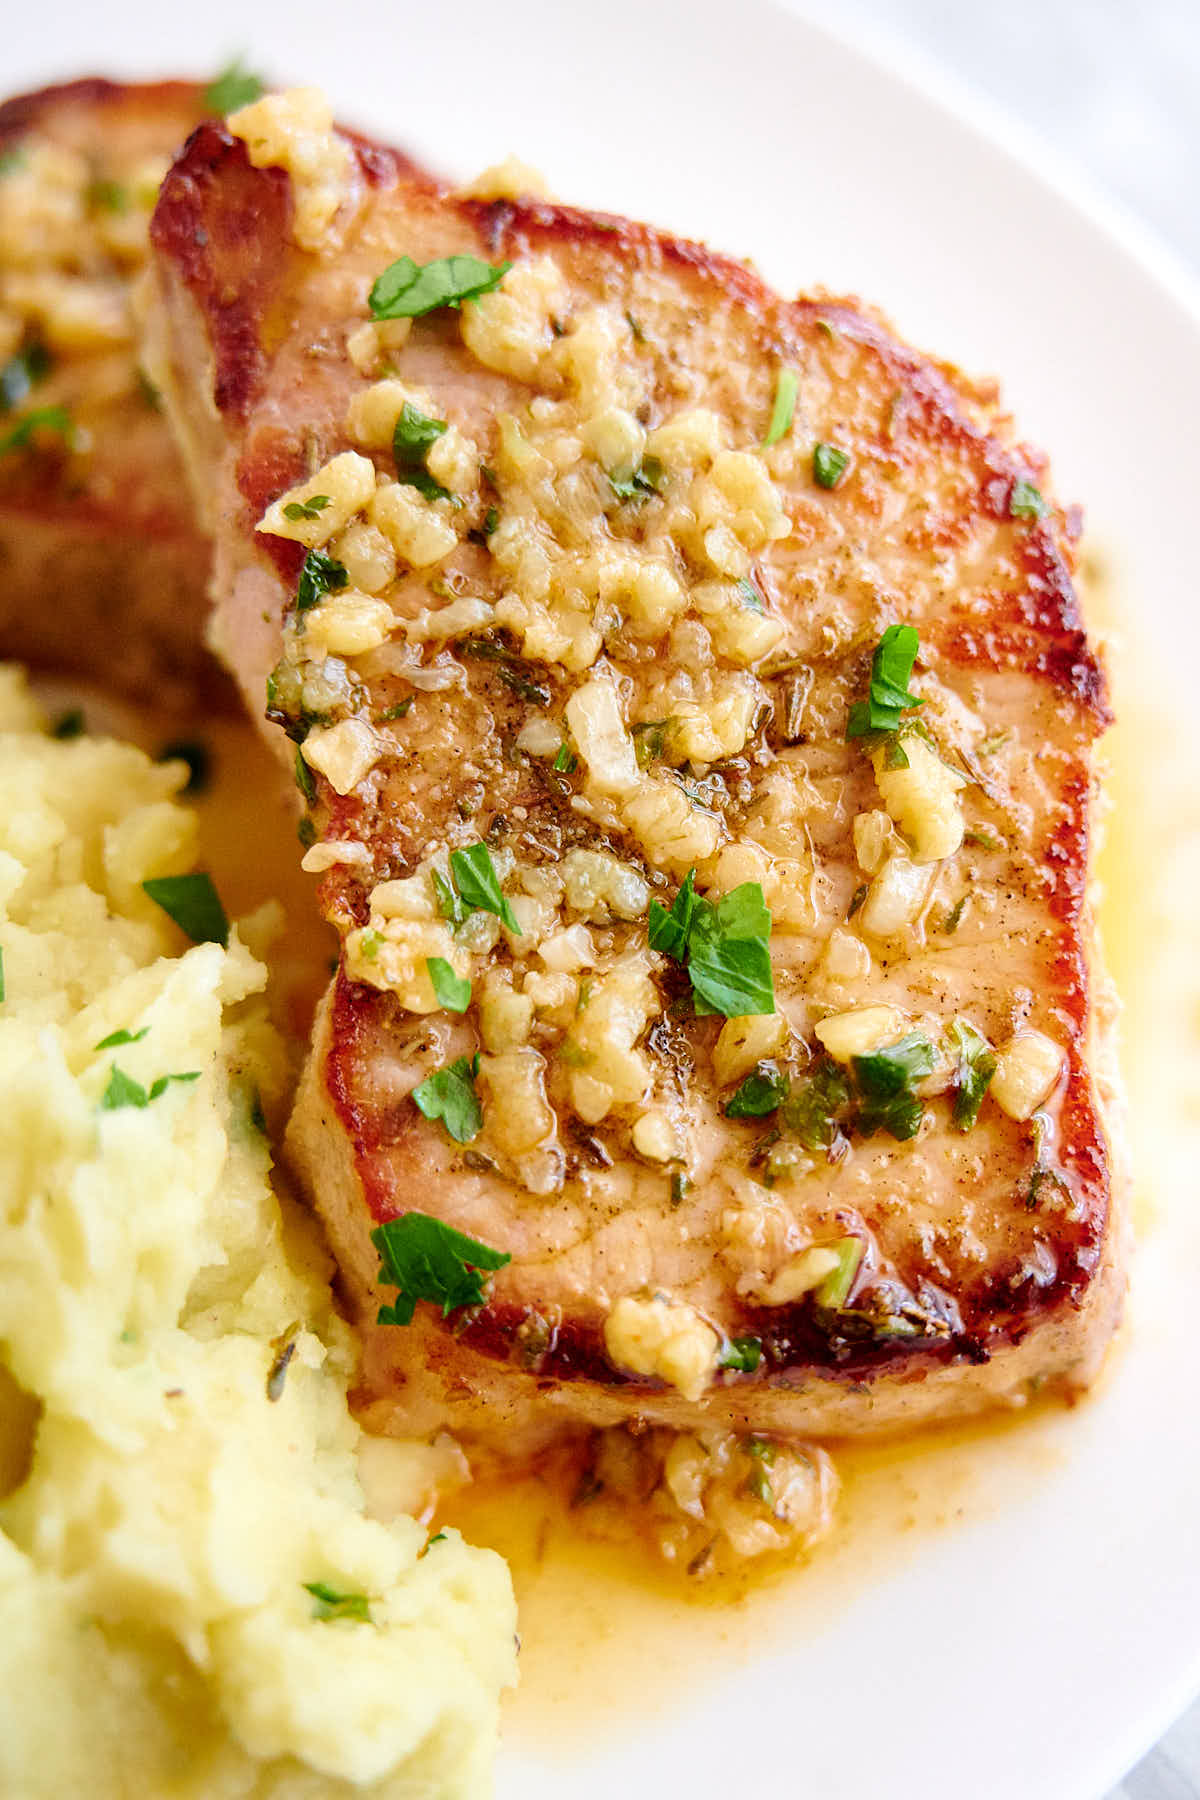 A delicious, juicy baked pork chop on a plate.